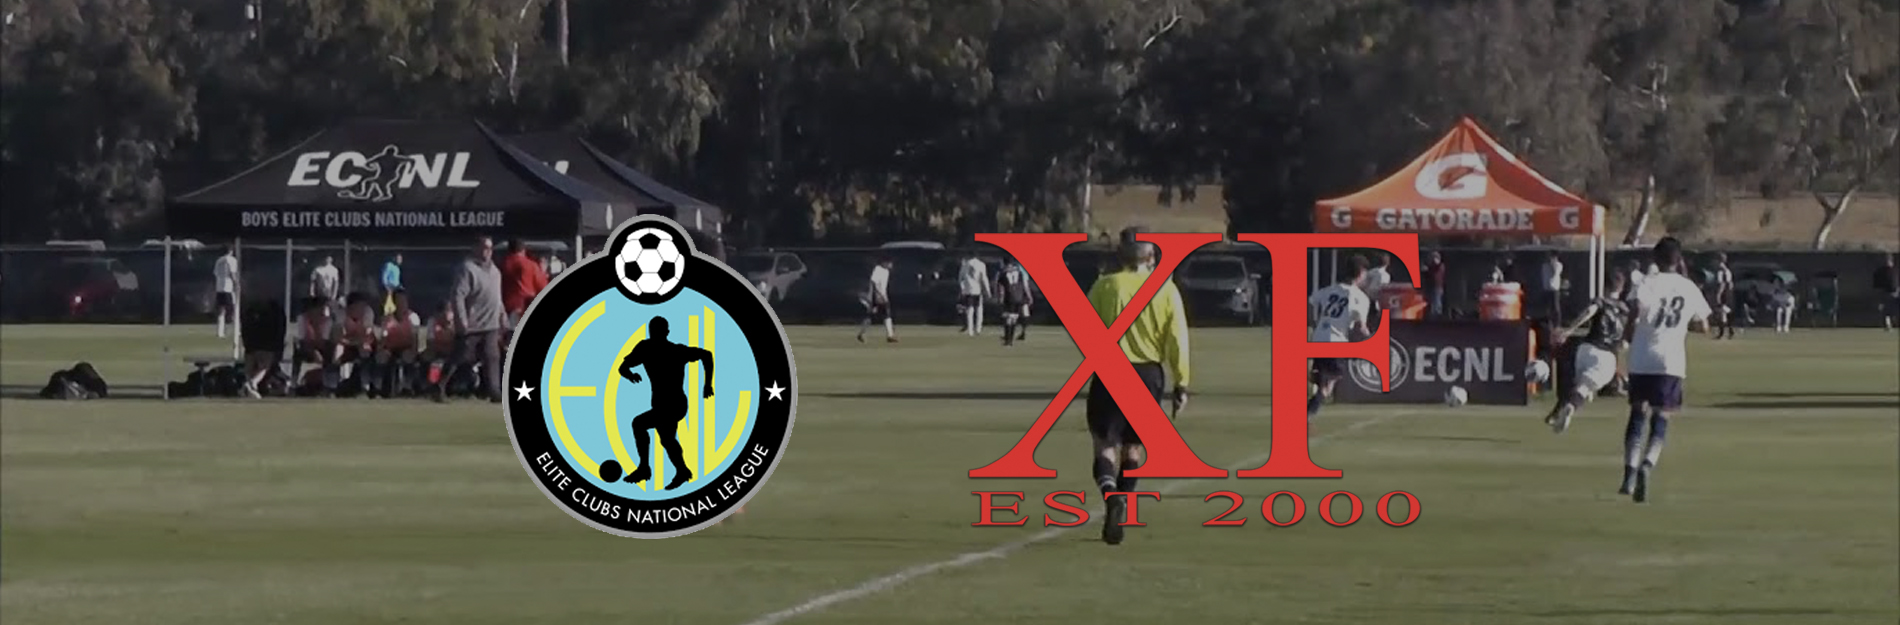 Crossfire Adds Boys ECNL to 2019-20 Programming - Crossfire Premier